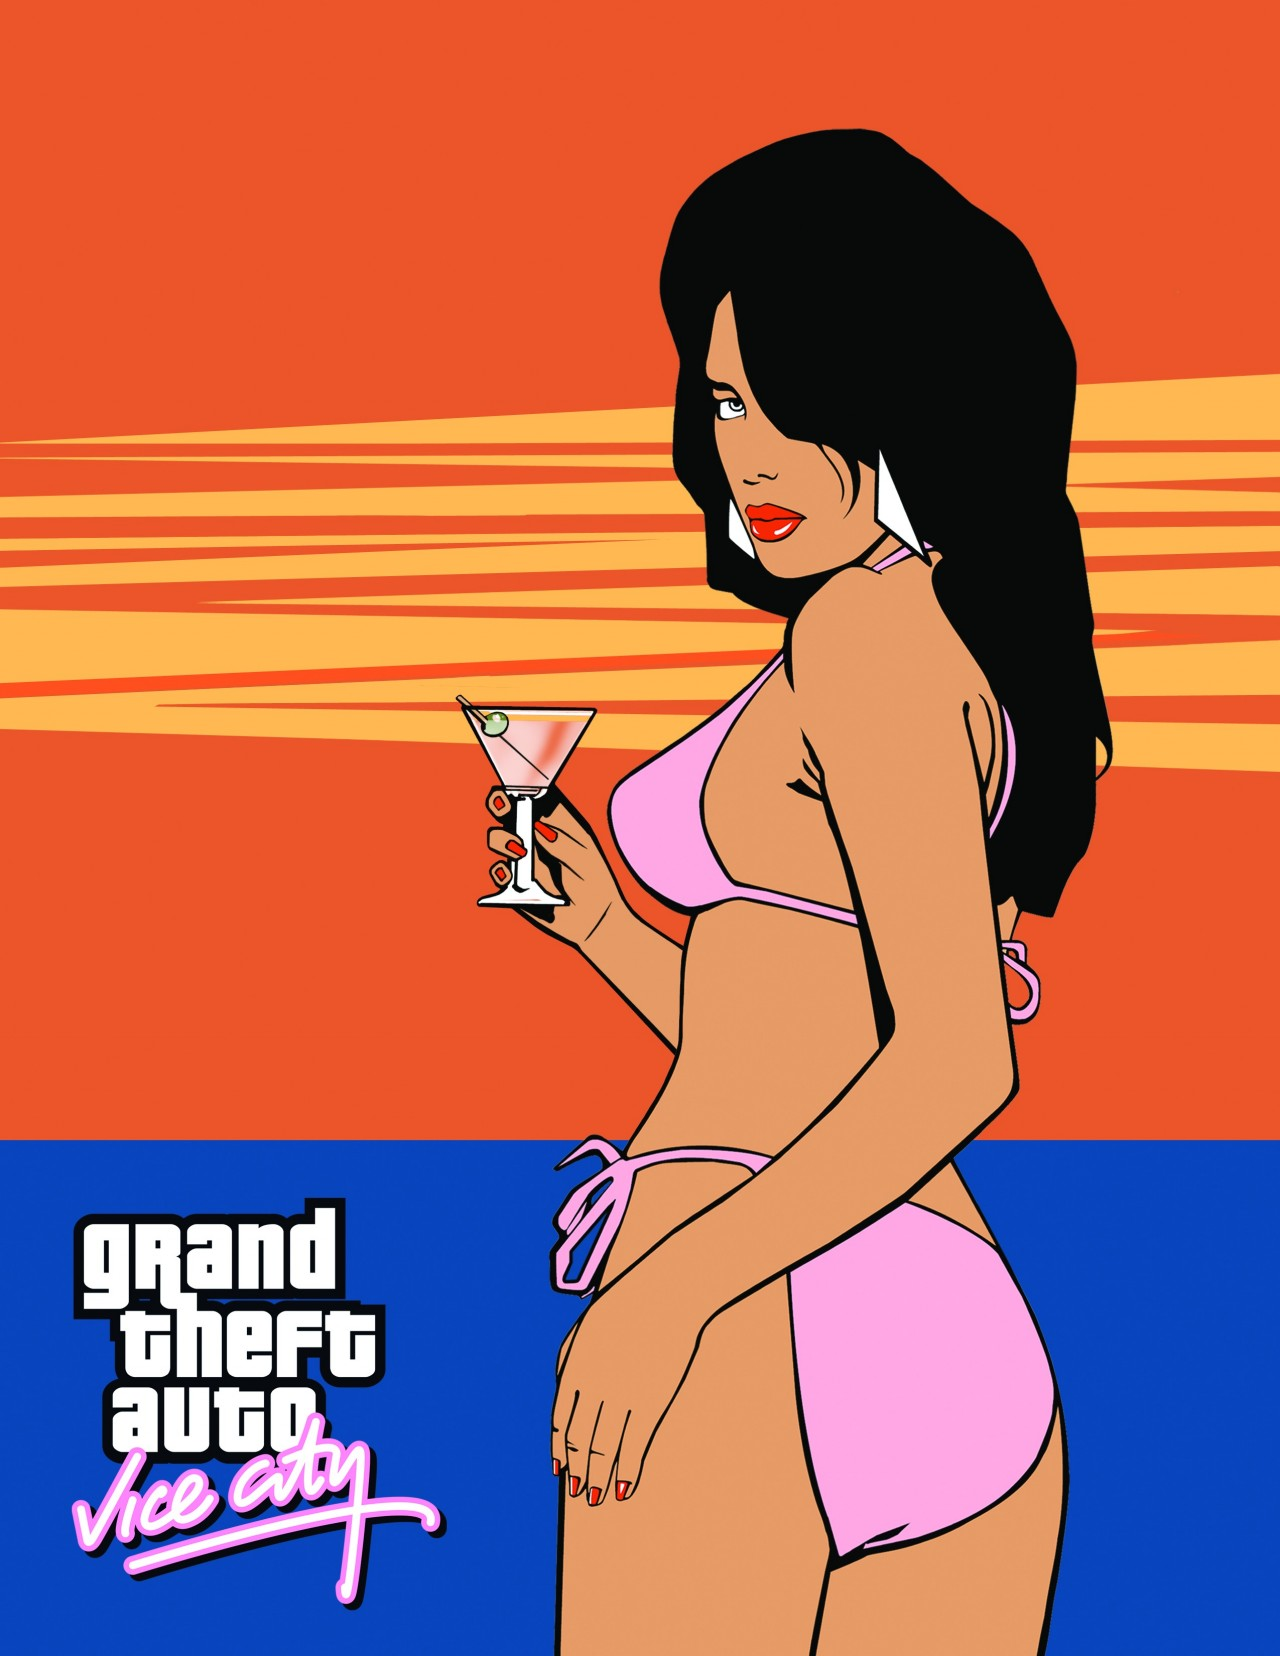 Gta vicecity hentai porncraft comics